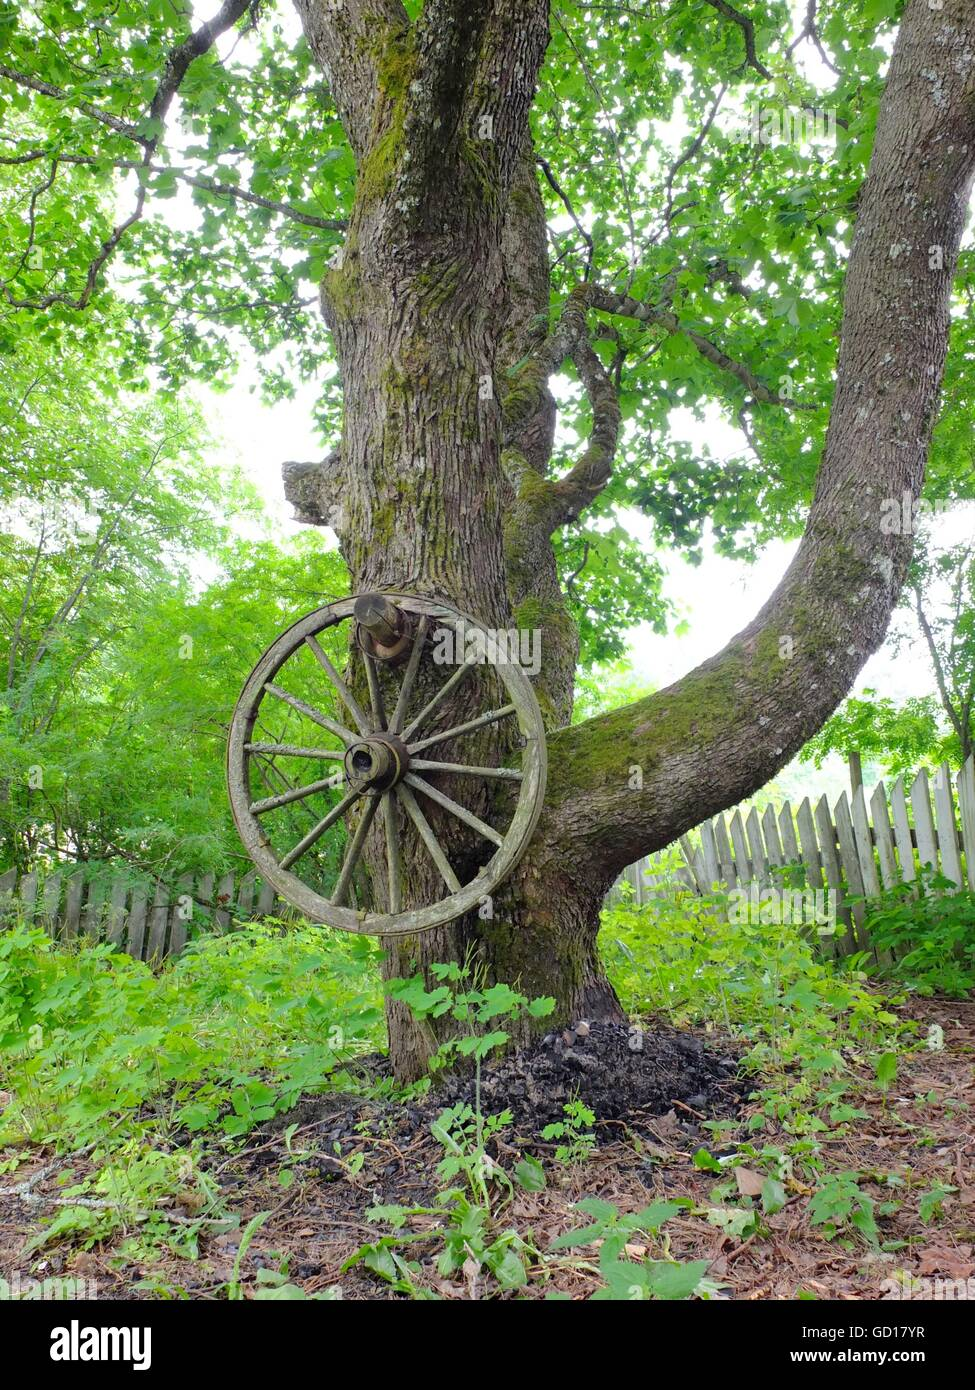 A rustic cartwheel hanging from a tree. Lush green foliage. - Stock Image